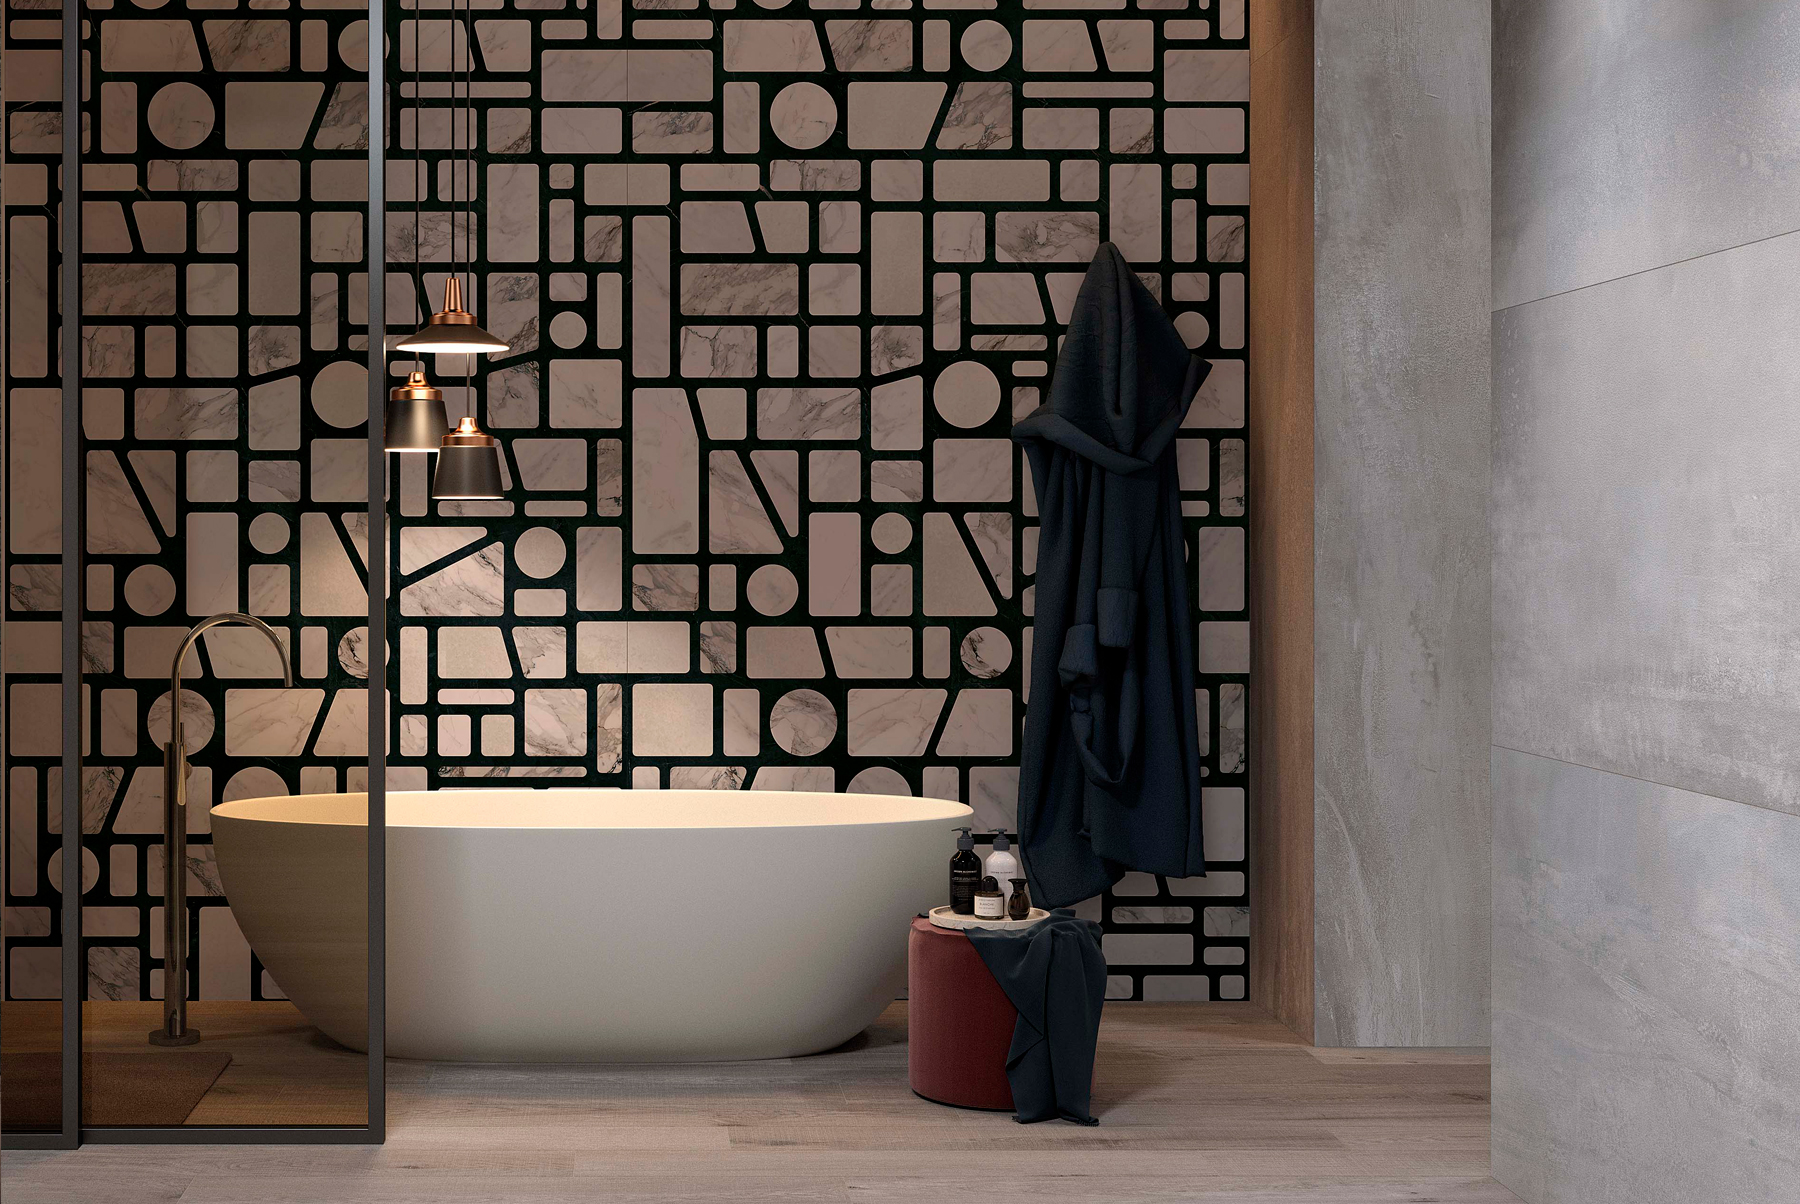 TILES-WIDE-N-STYLE-INSET-5-1800x1204